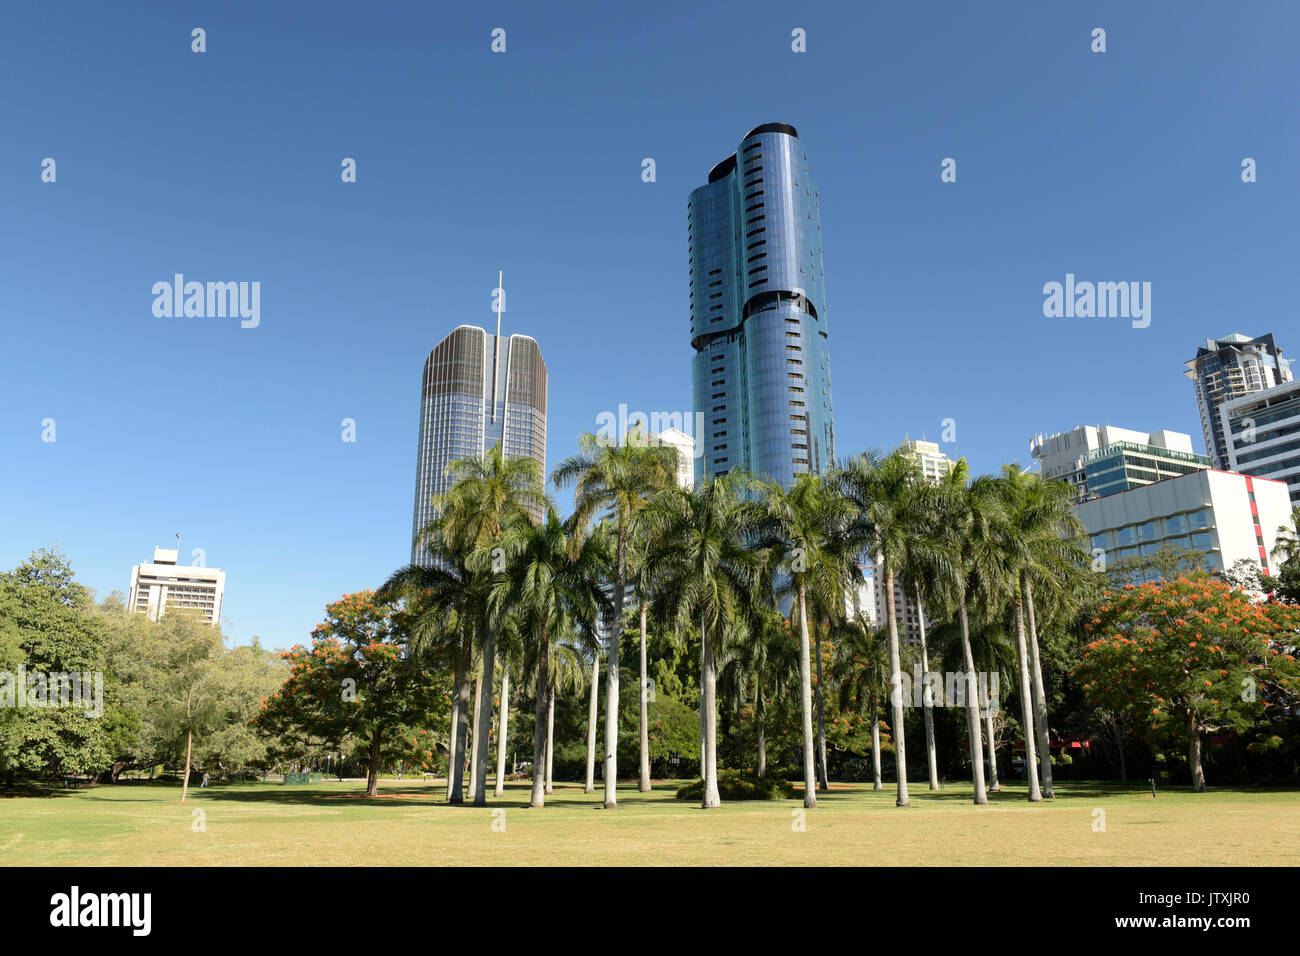 Brisbane City Botanical Gardens - Stock Image